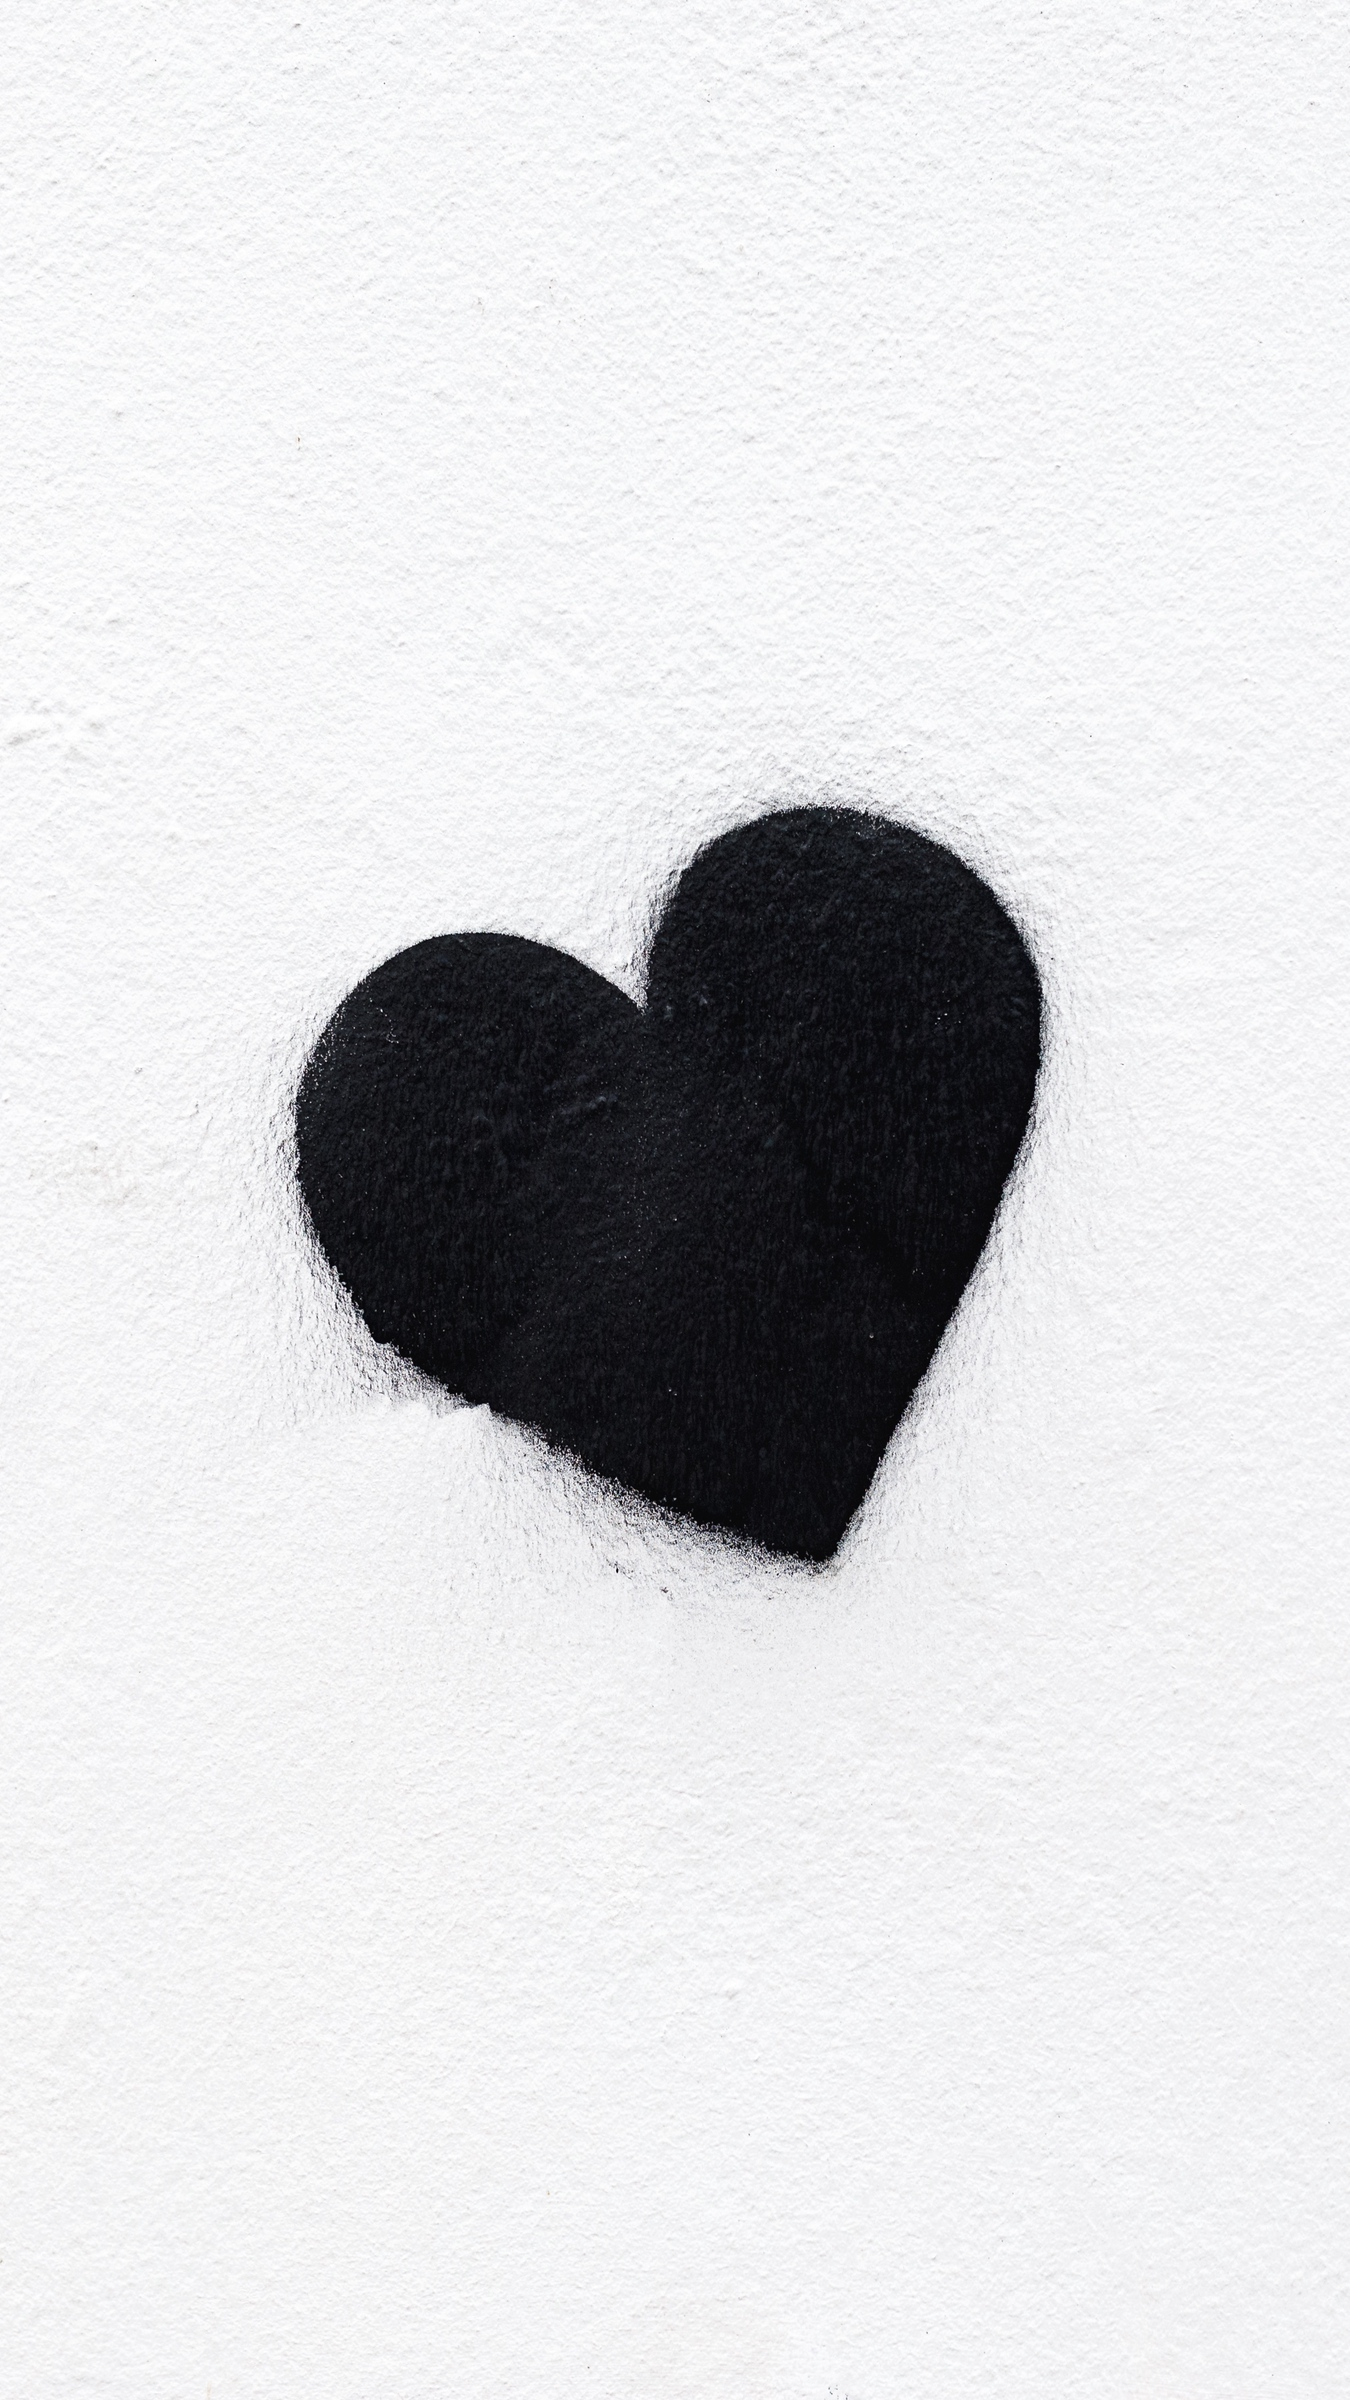 128 1286584 wallpaper heart bw love black white minimalism black